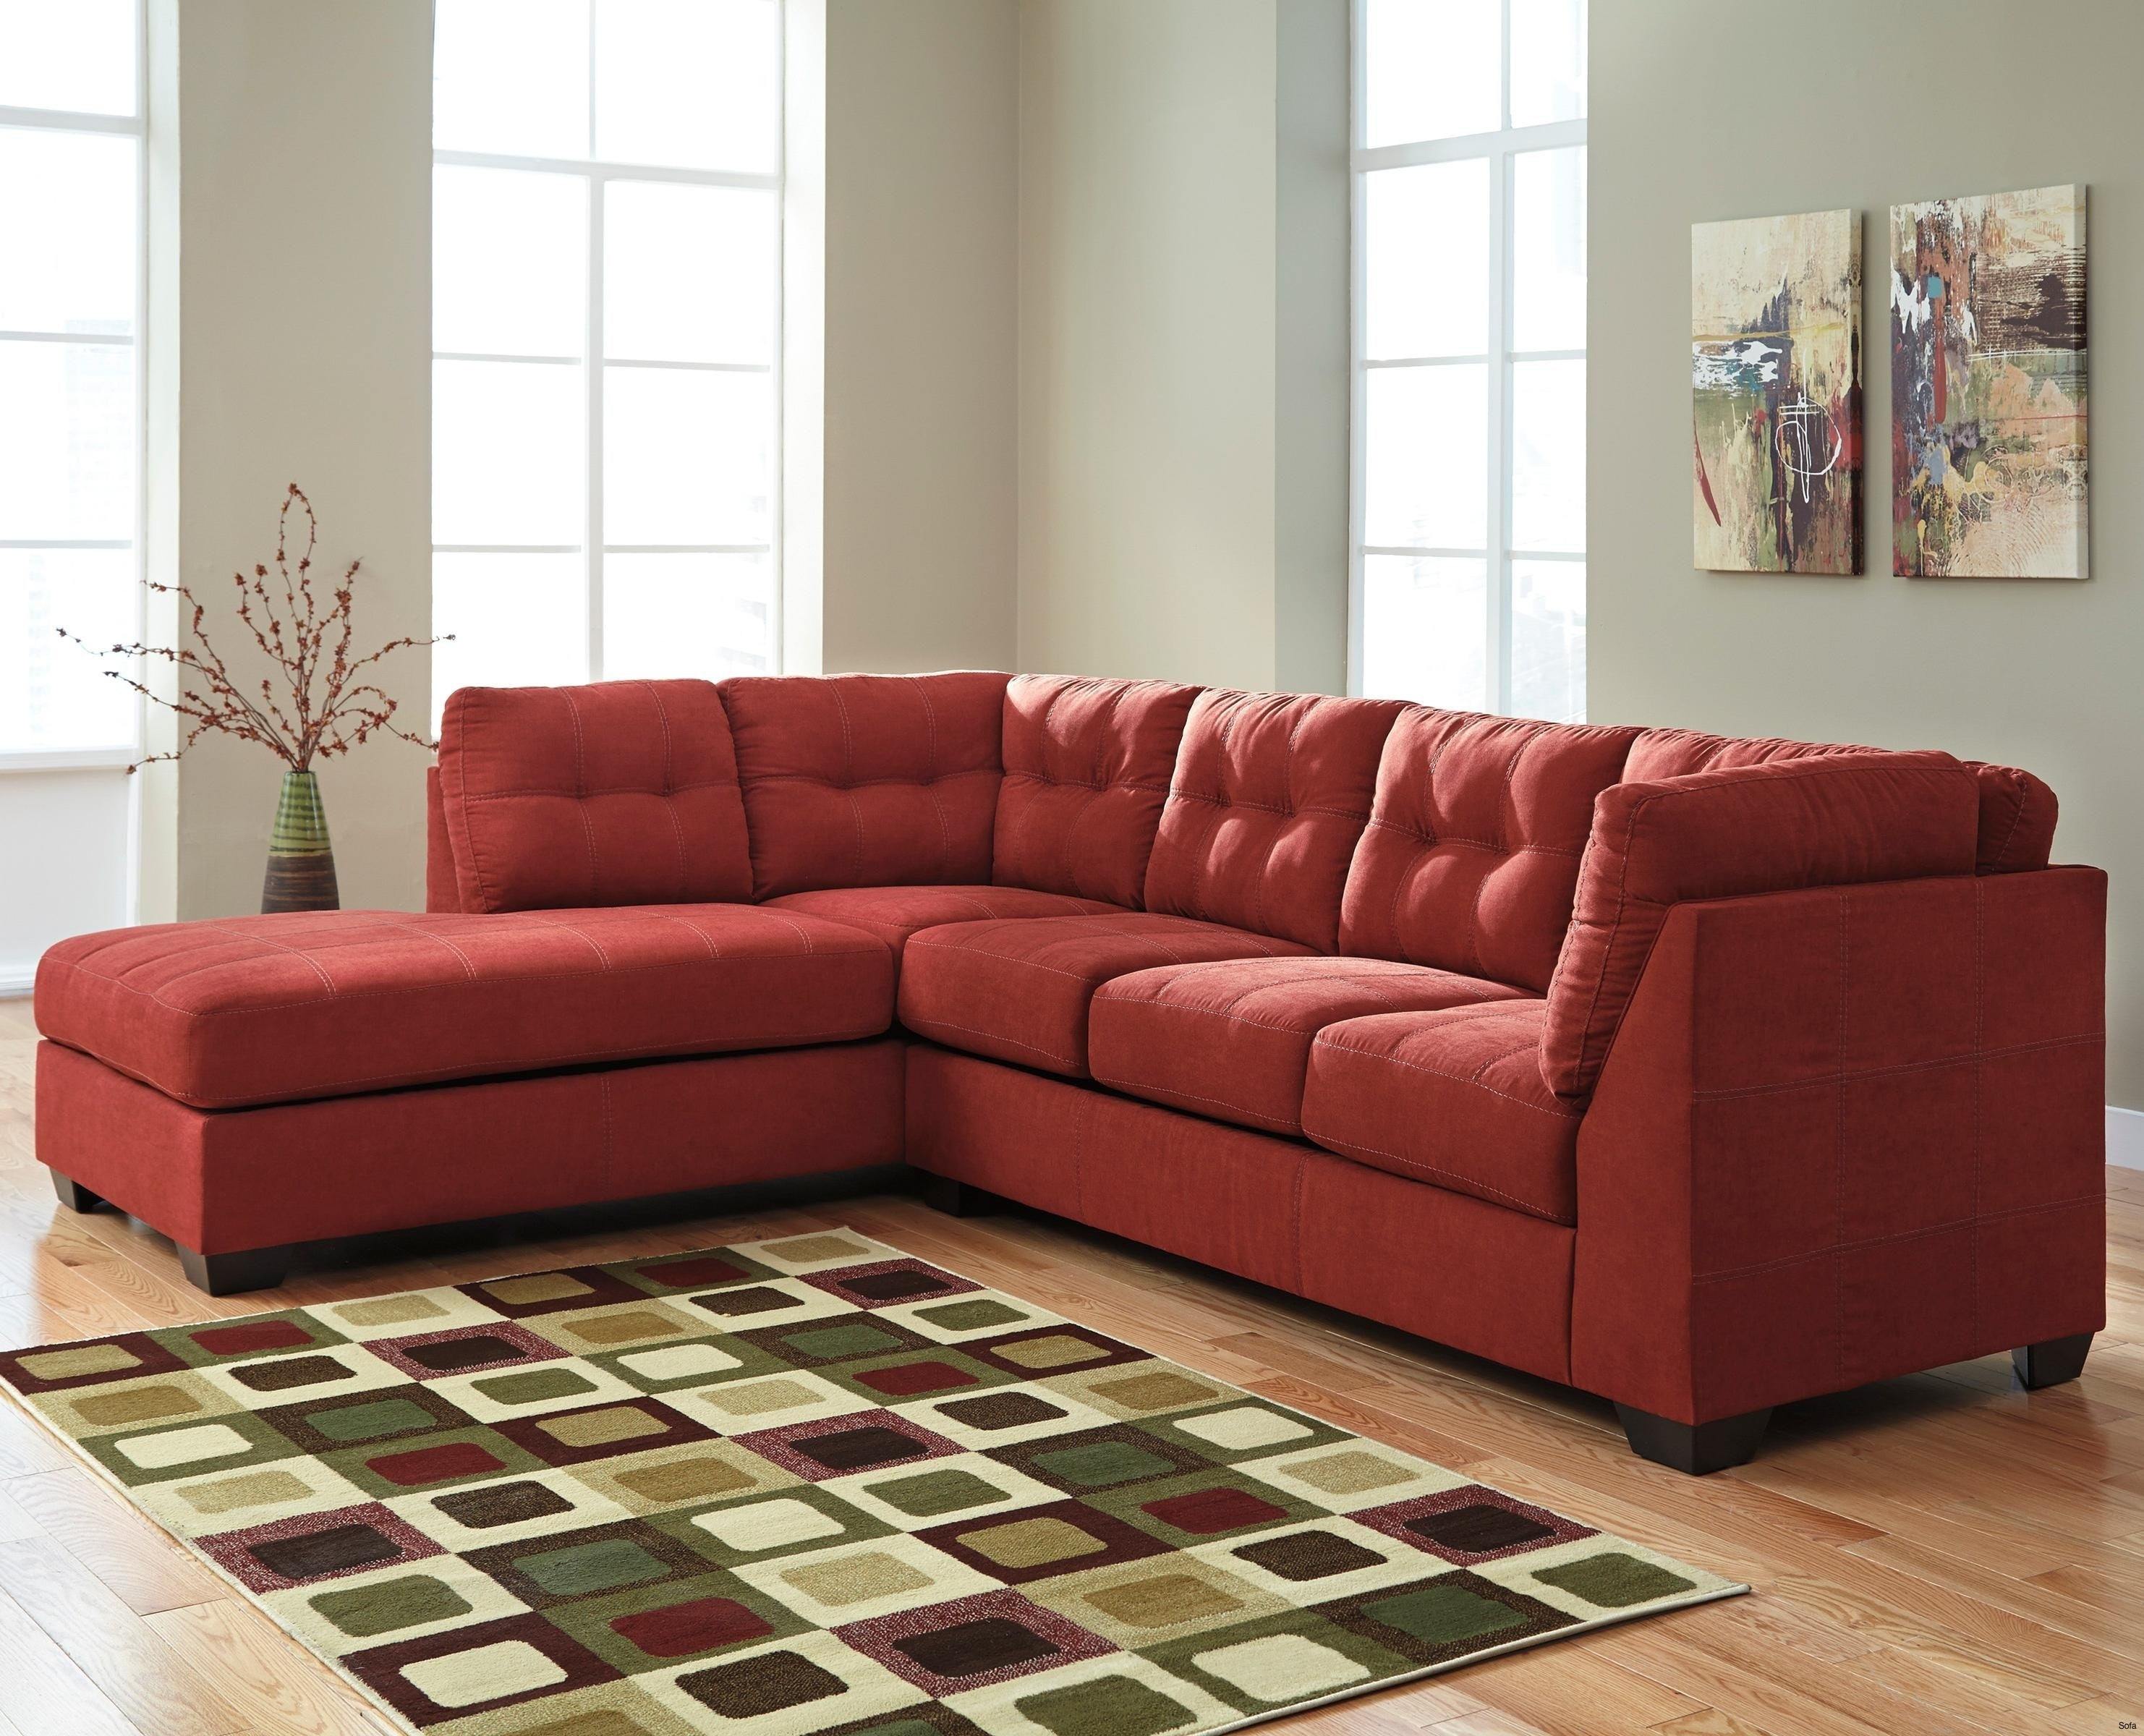 Fair Sofa With 2 Chaises For Your Sectional Sofa With 2 Chaises pertaining to Aspen 2 Piece Sleeper Sectionals With Laf Chaise (Image 10 of 30)